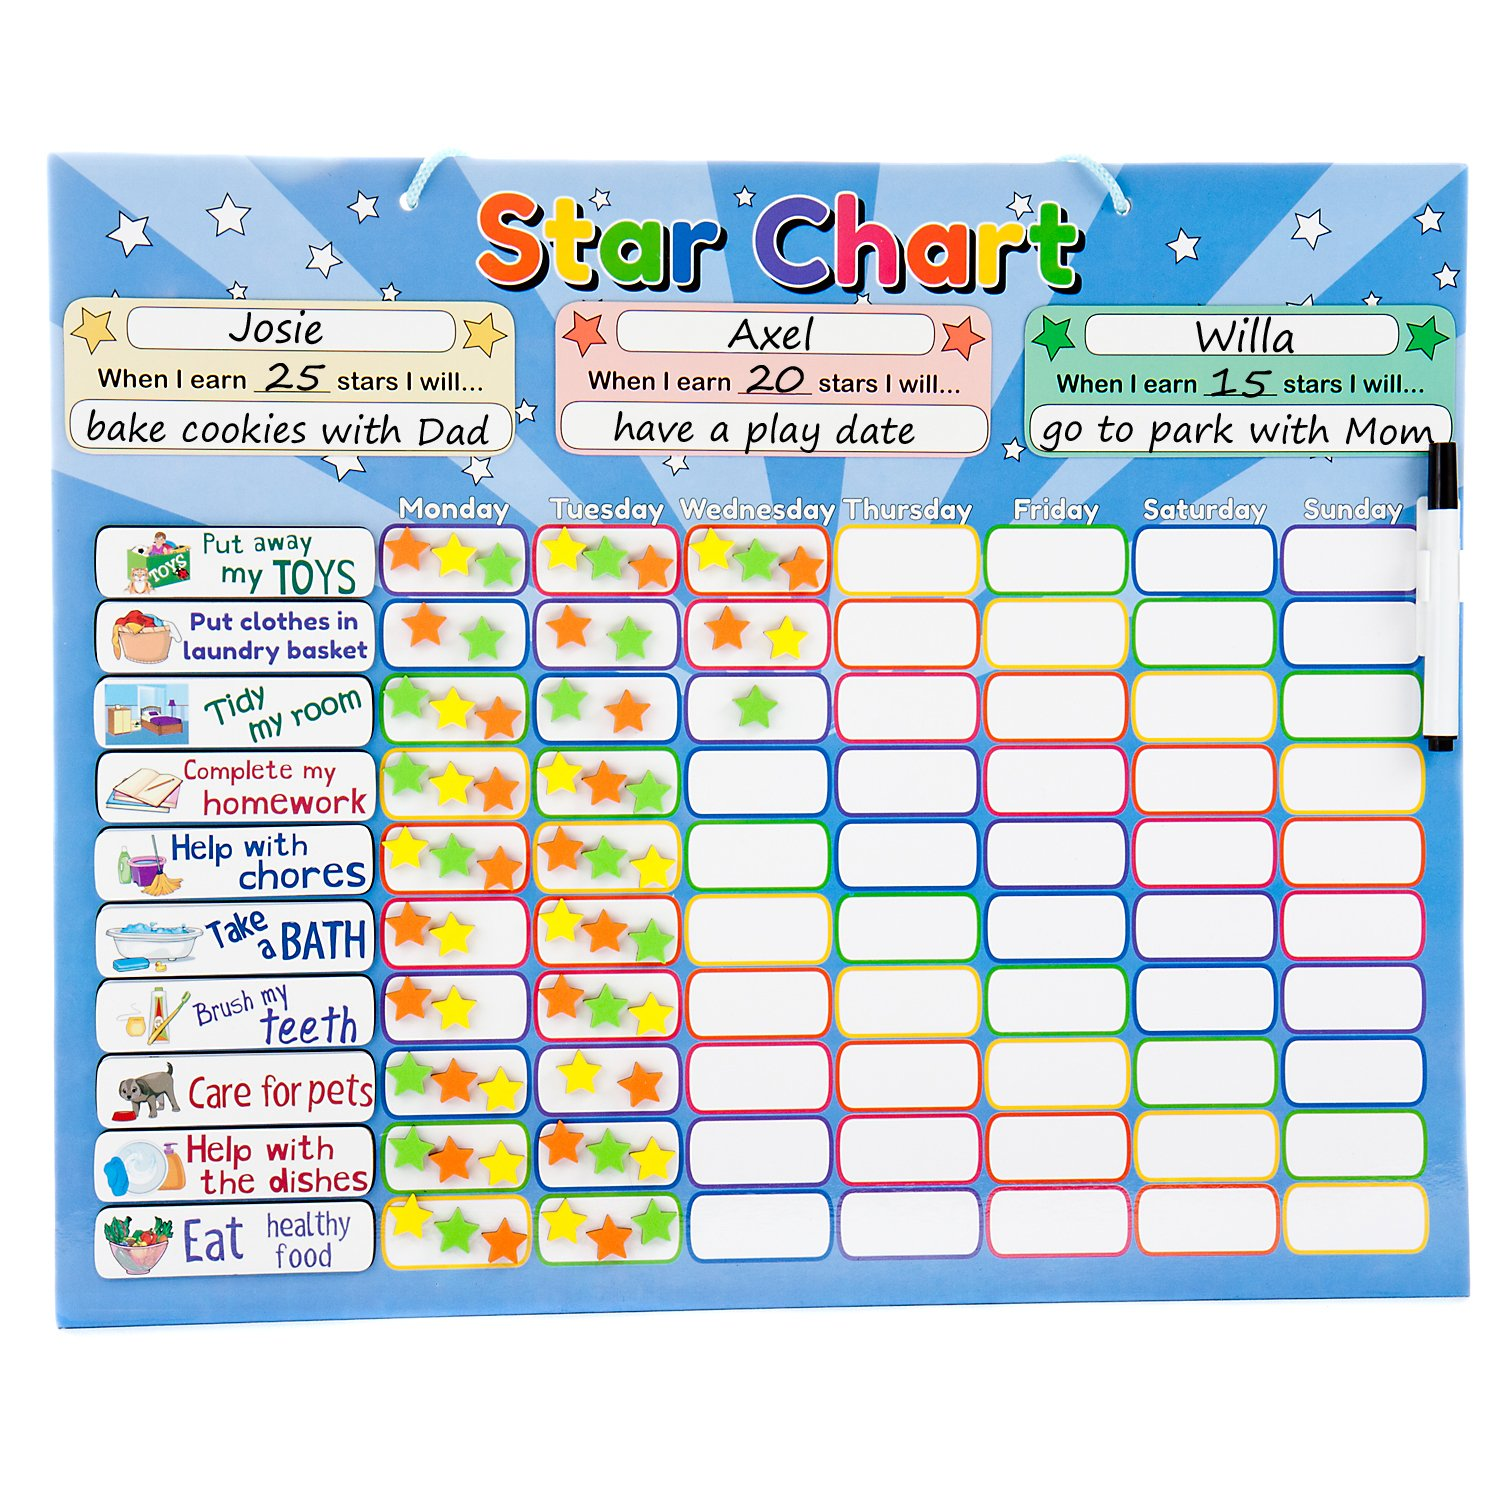 Roscoe Learning Responsibility Star Chart | Customize for 1-3 Kids | Magnetic Chore Reward System by Roscoe Learning